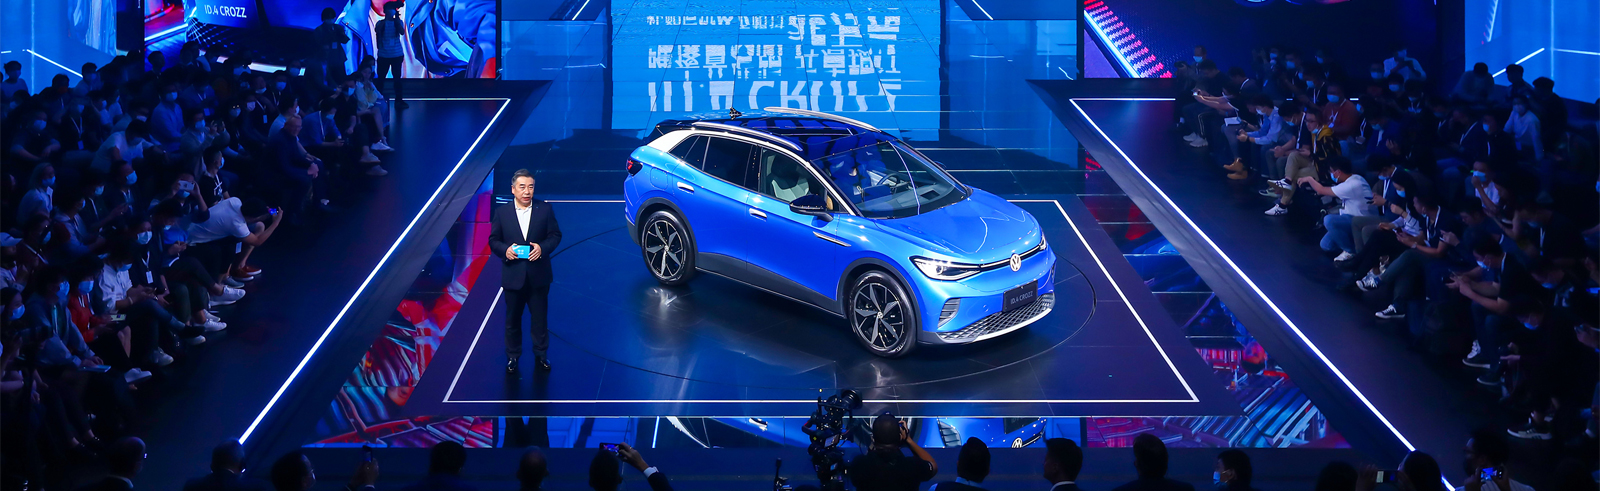 FAW VW launches the ID.4 CROZZ in China simultaneously with the ID.4 X by SAIC VW